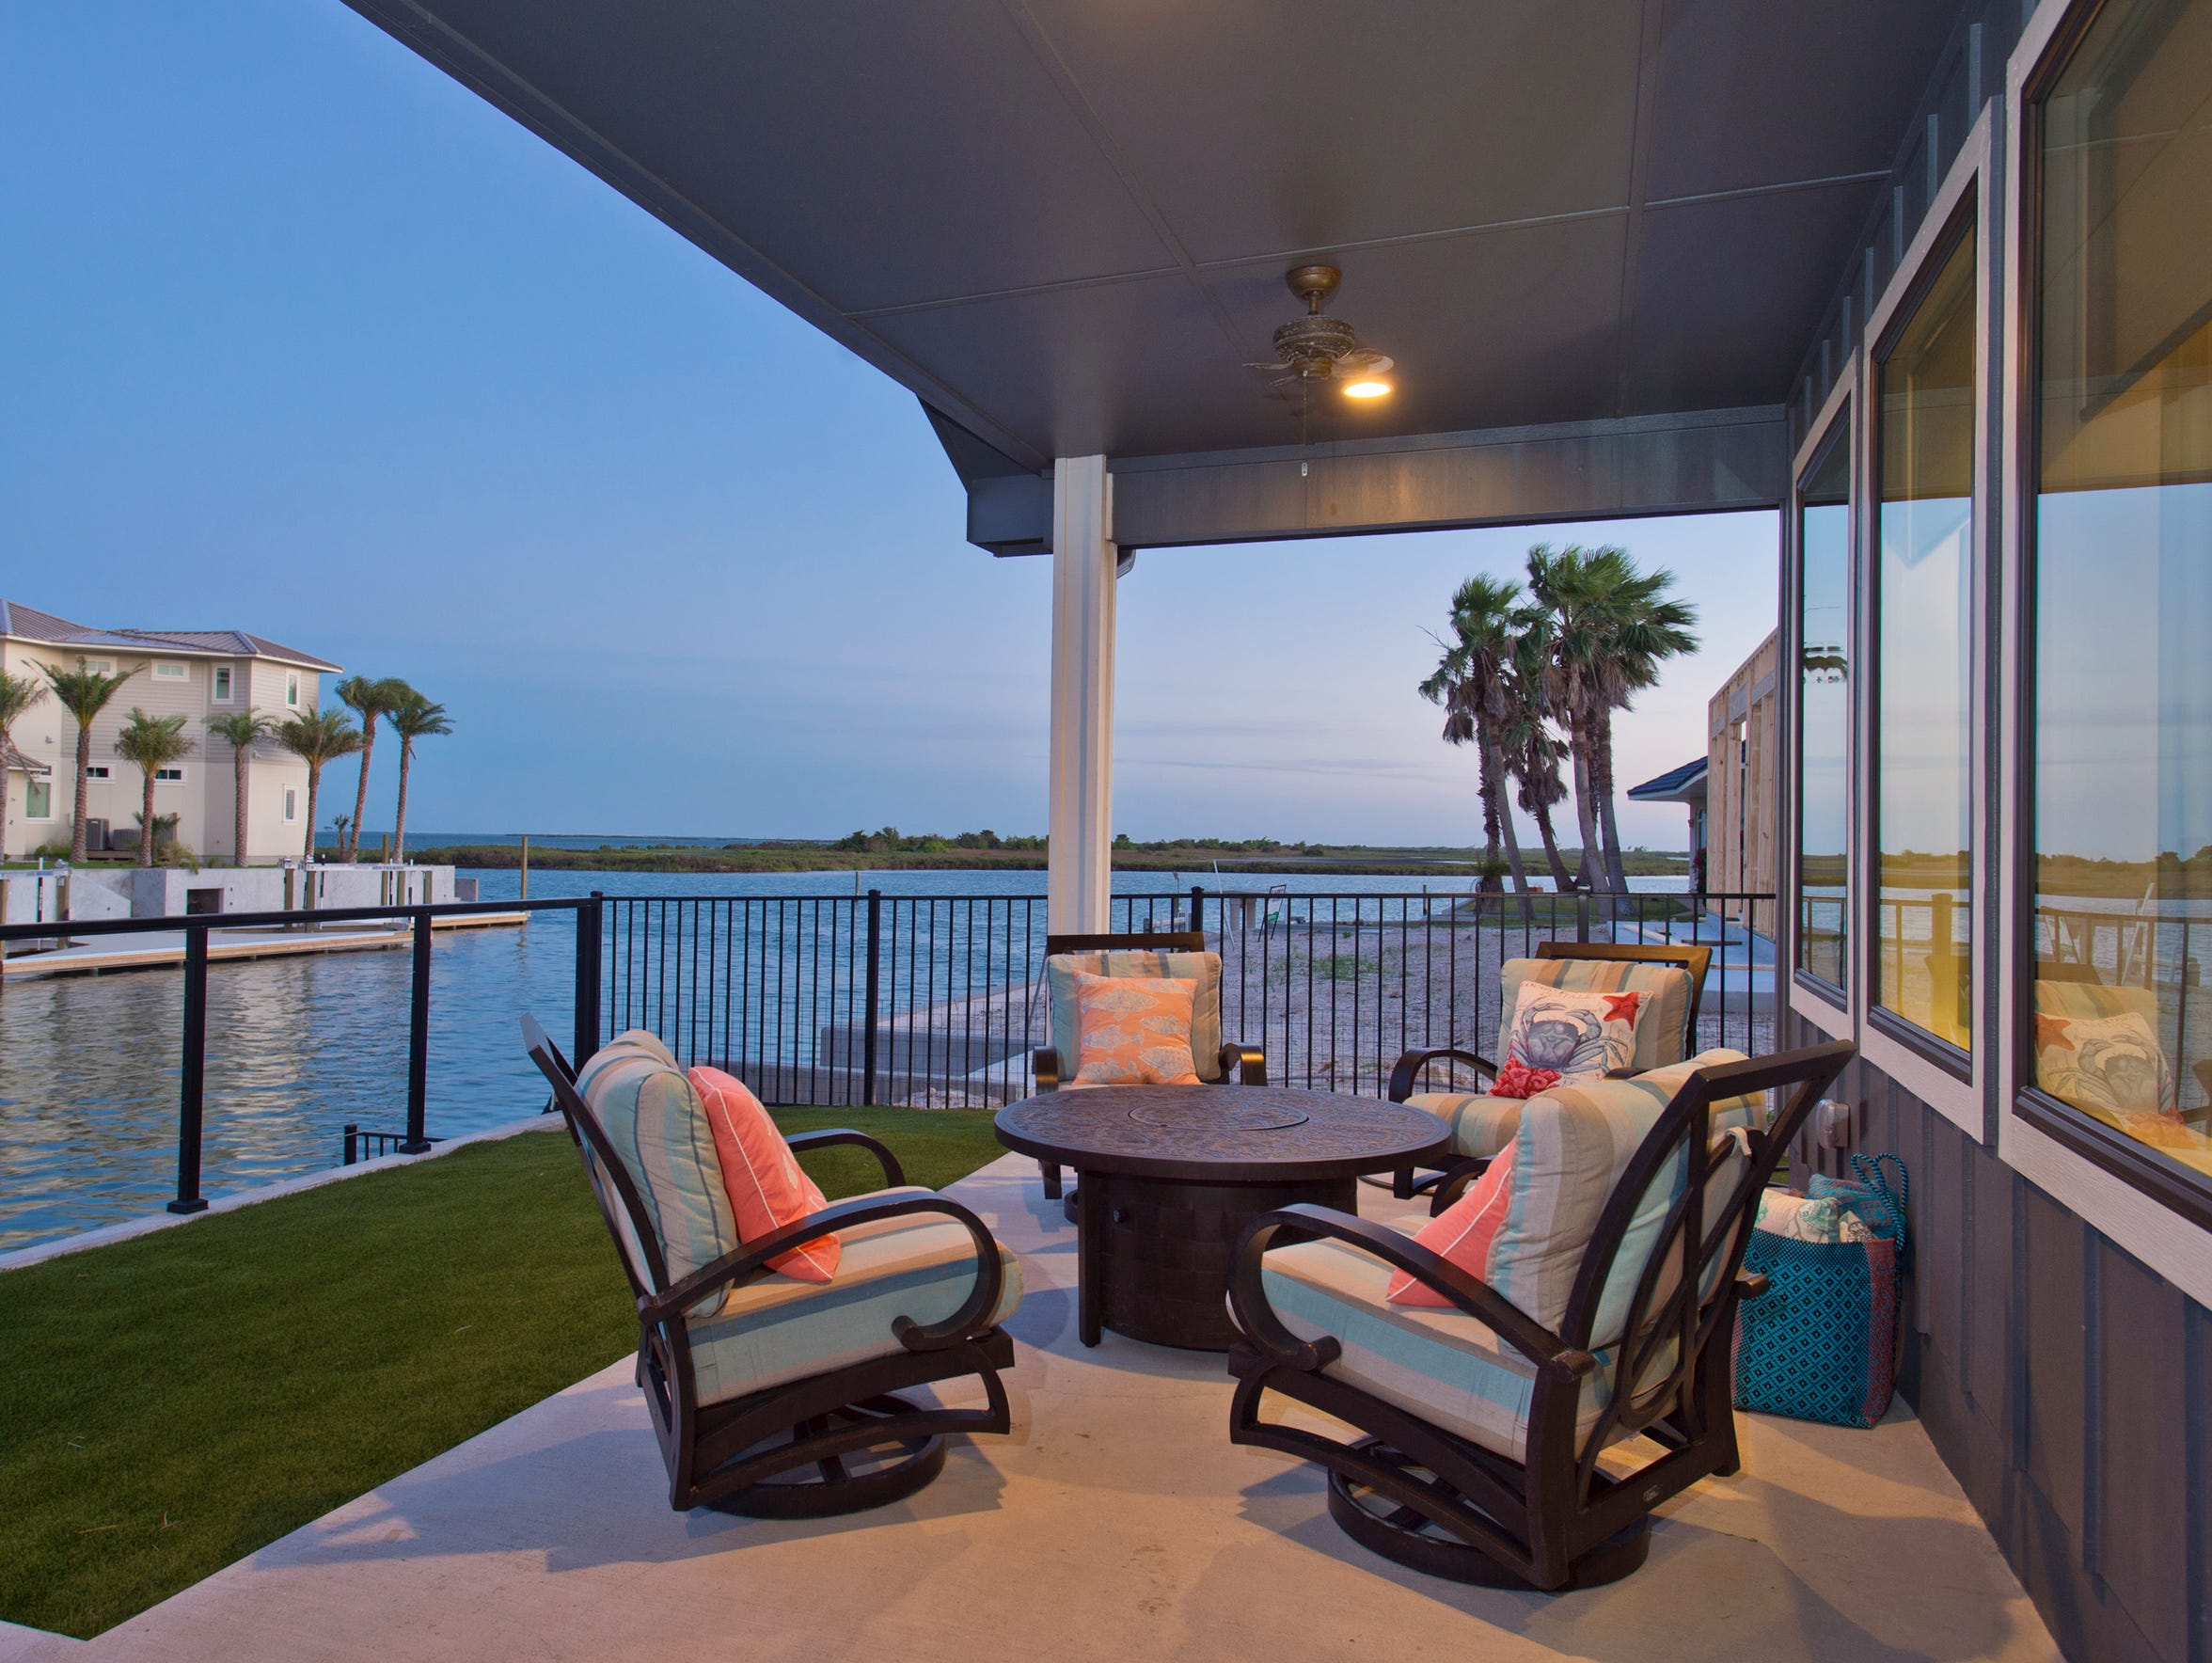 Outdoor living at it's best in this sitting area overlooking